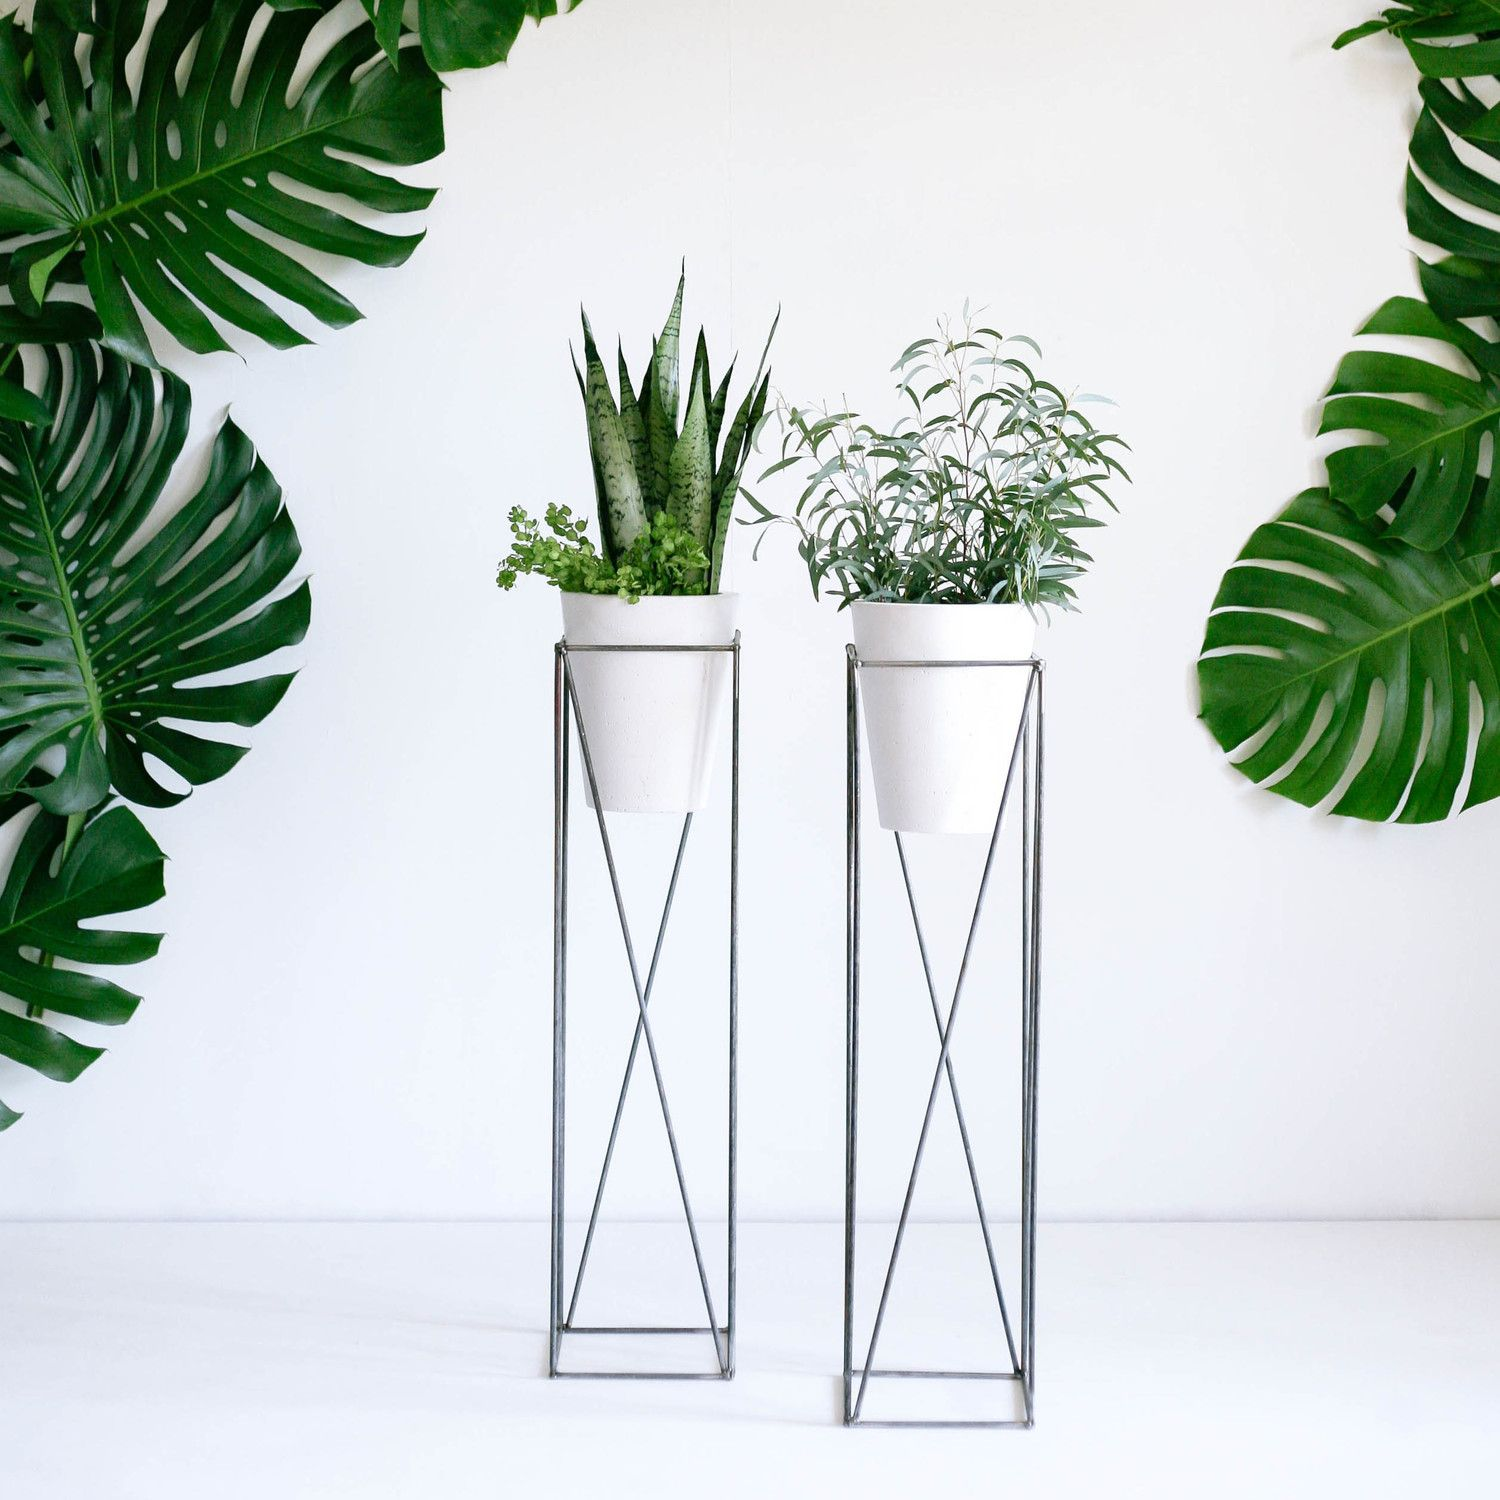 Kkdw Tall Plant Stand - Green Thumb - Pinterest -